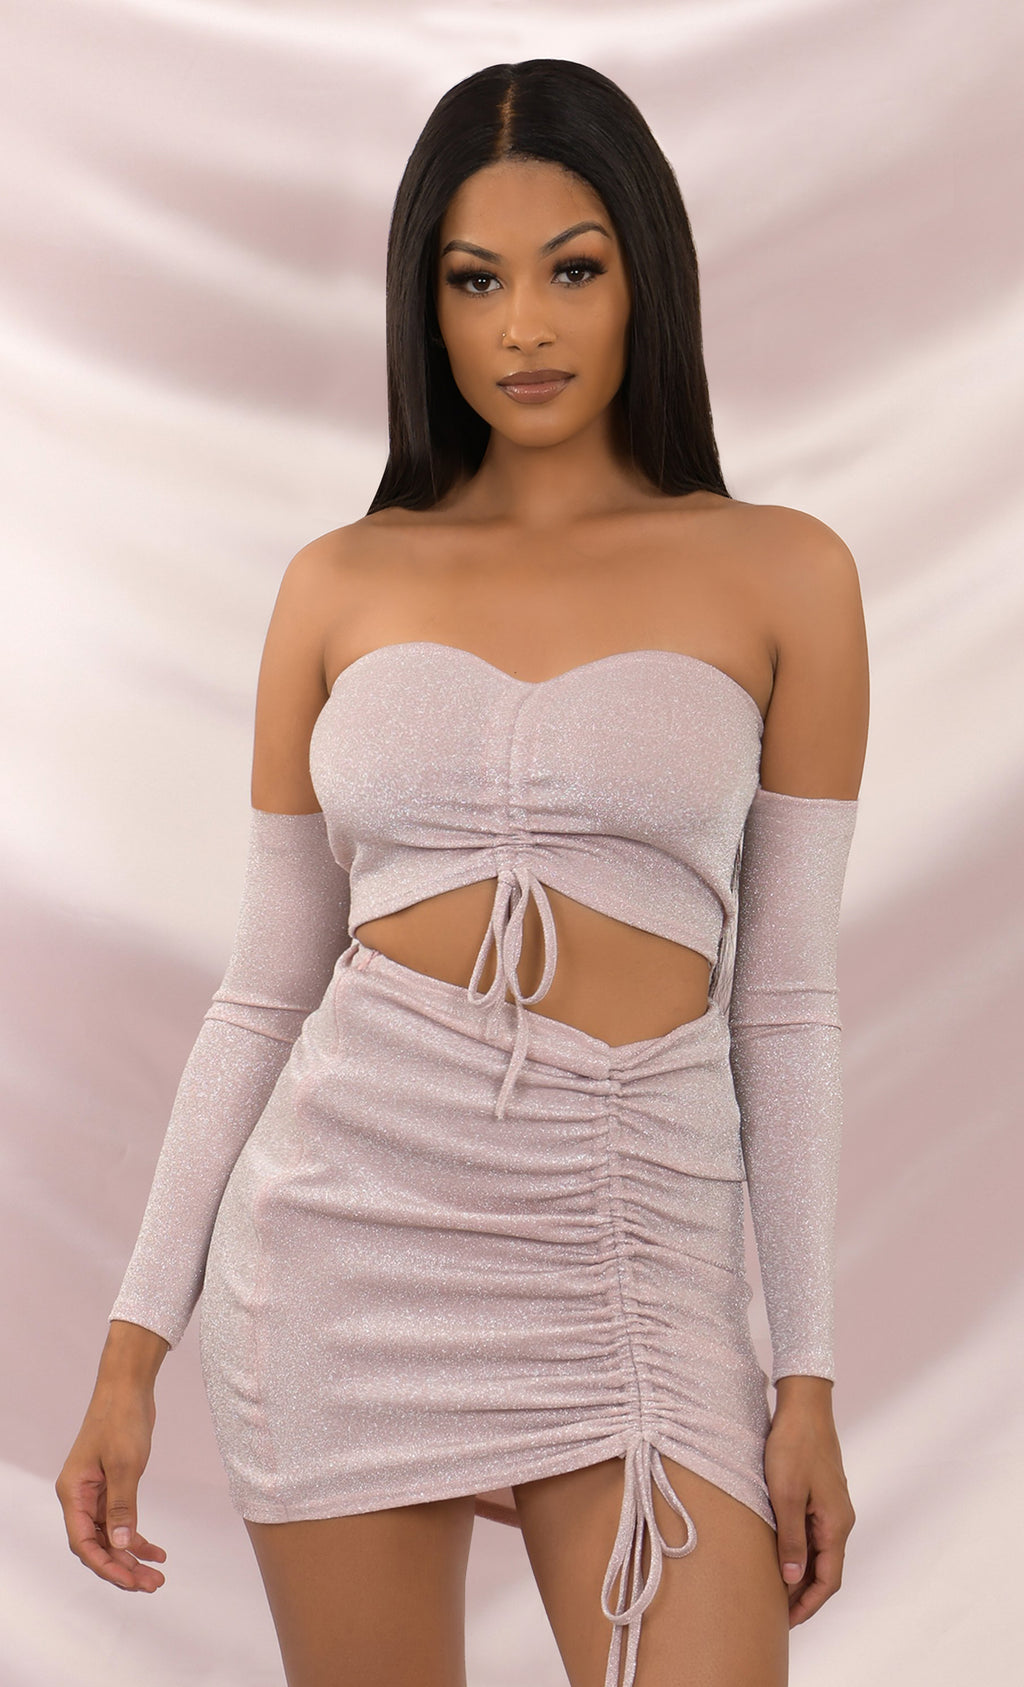 Dance With Me Beige Off the Shoulder Lurex Glitter Ruched Tie Front Strapless Crop Top Mini Dress Set